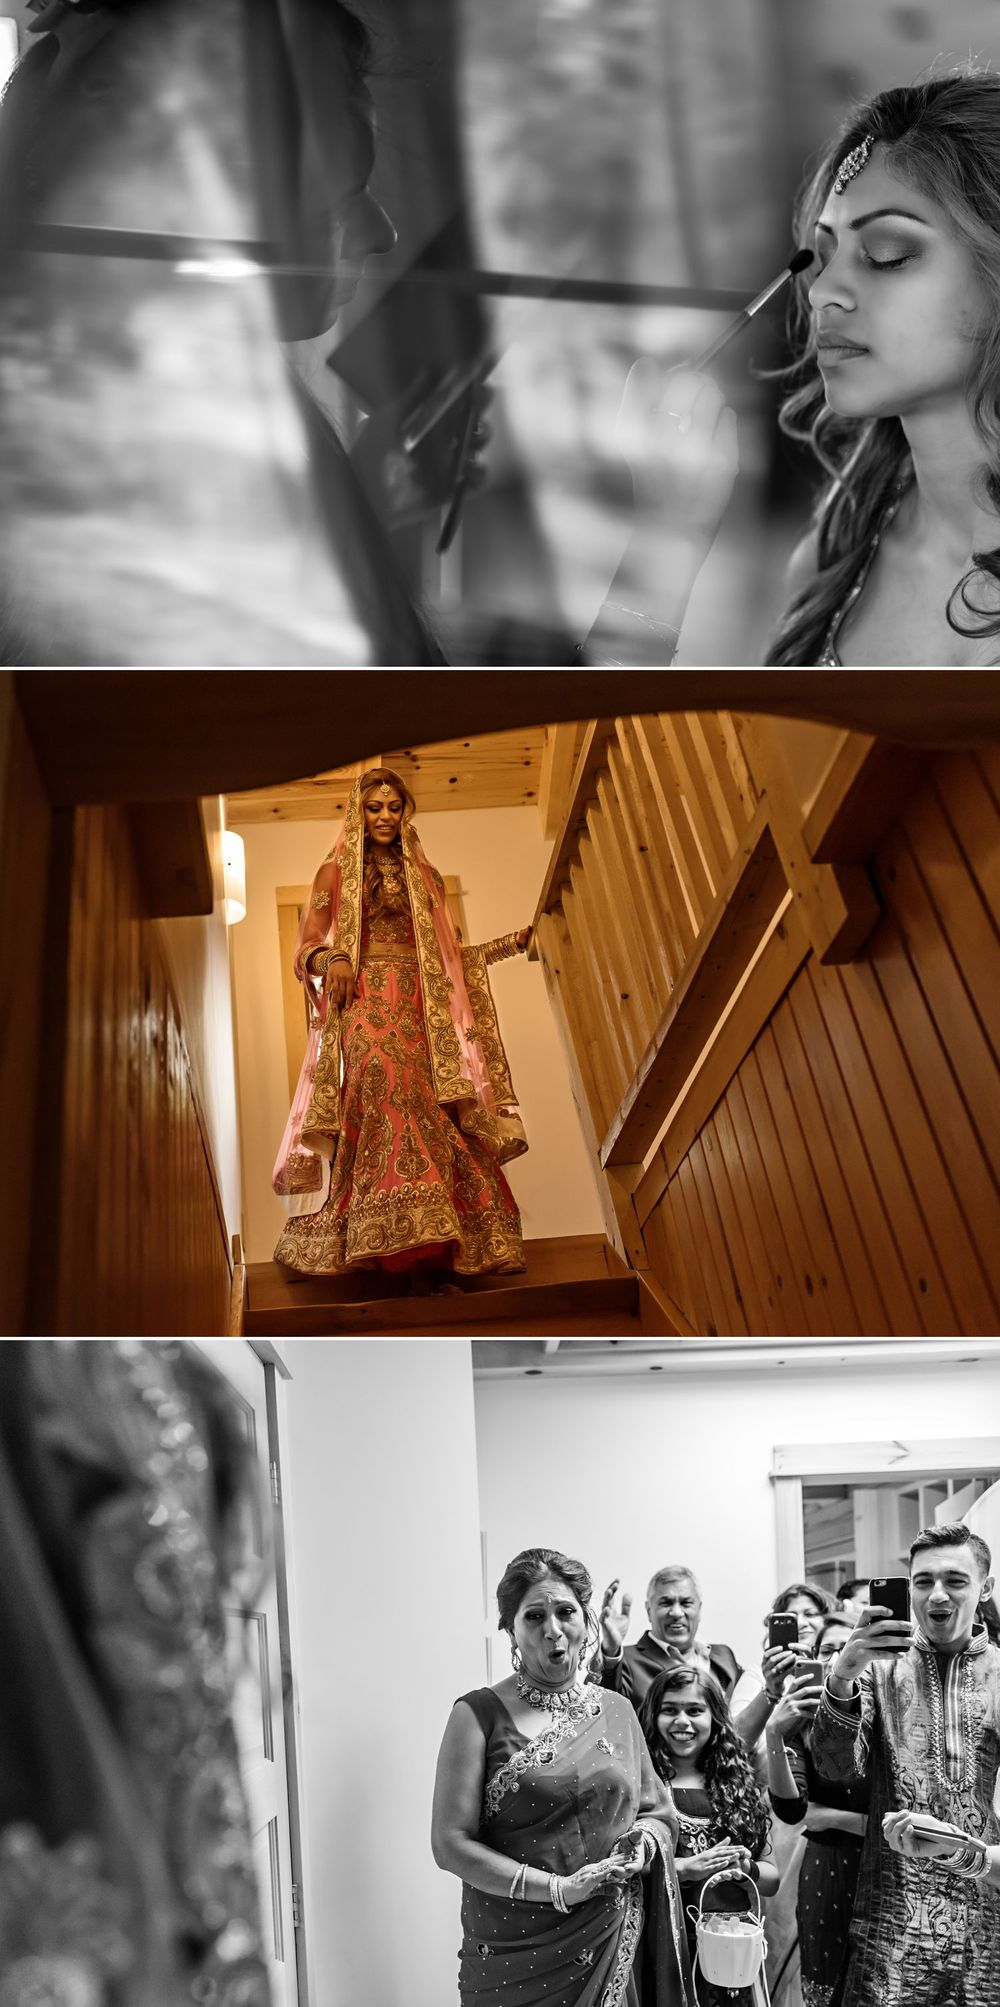 The bride while she gets ready and first coming out in her traditional Indian wedding dress